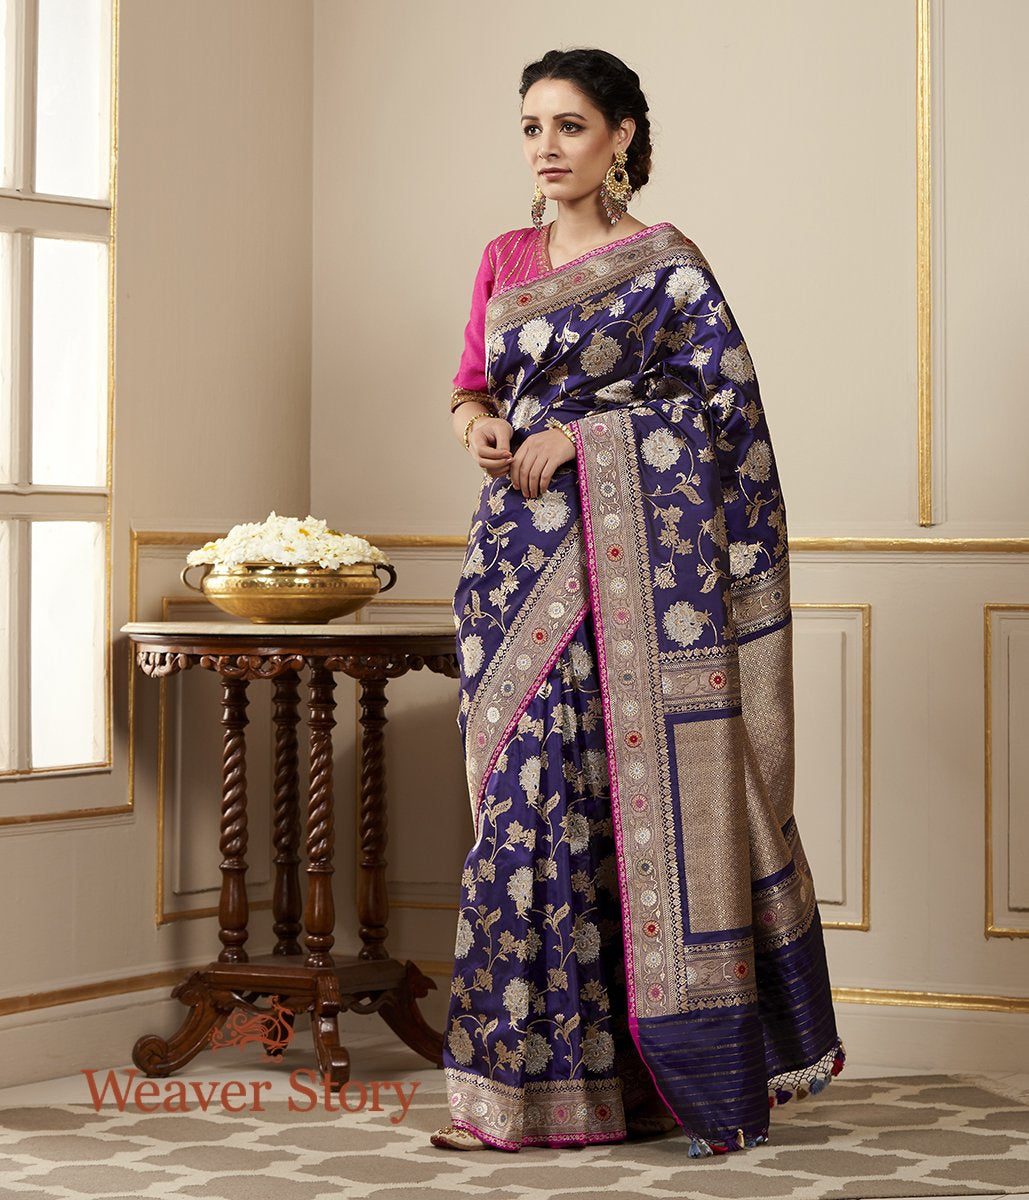 Handwoven Purple Sona Rupa Kadhwa Jangla Saree with Meenakari